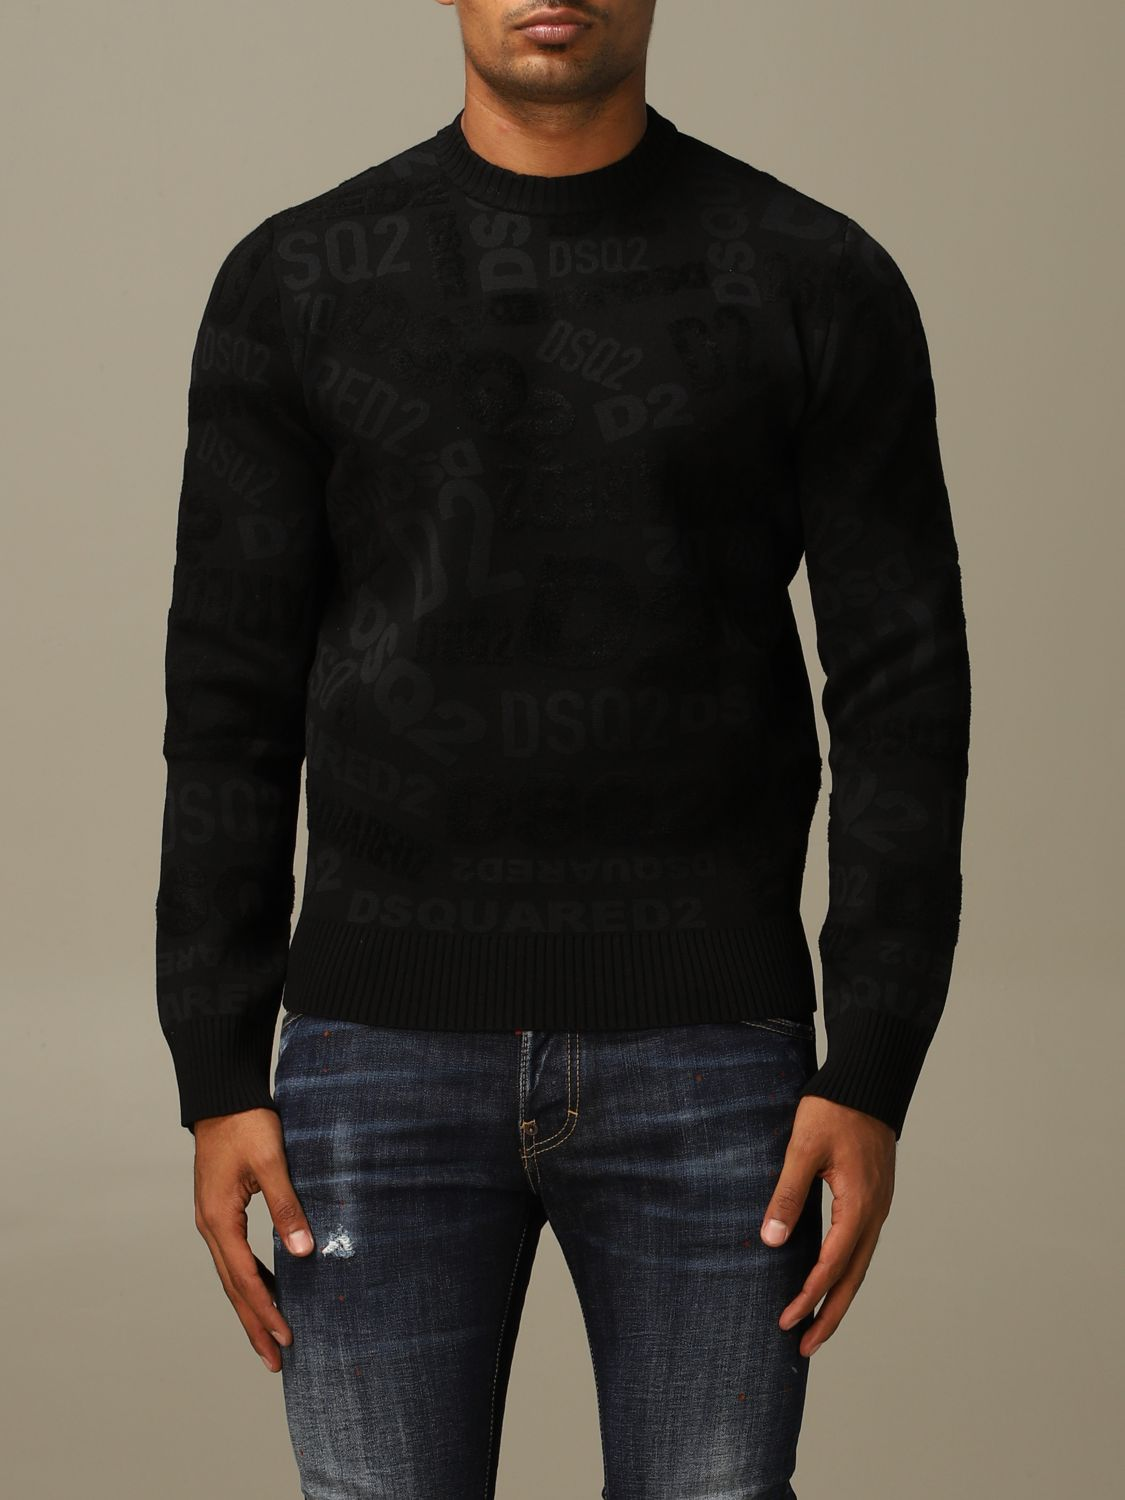 Pull Dsquared2: Pull homme Dsquared2 noir 1